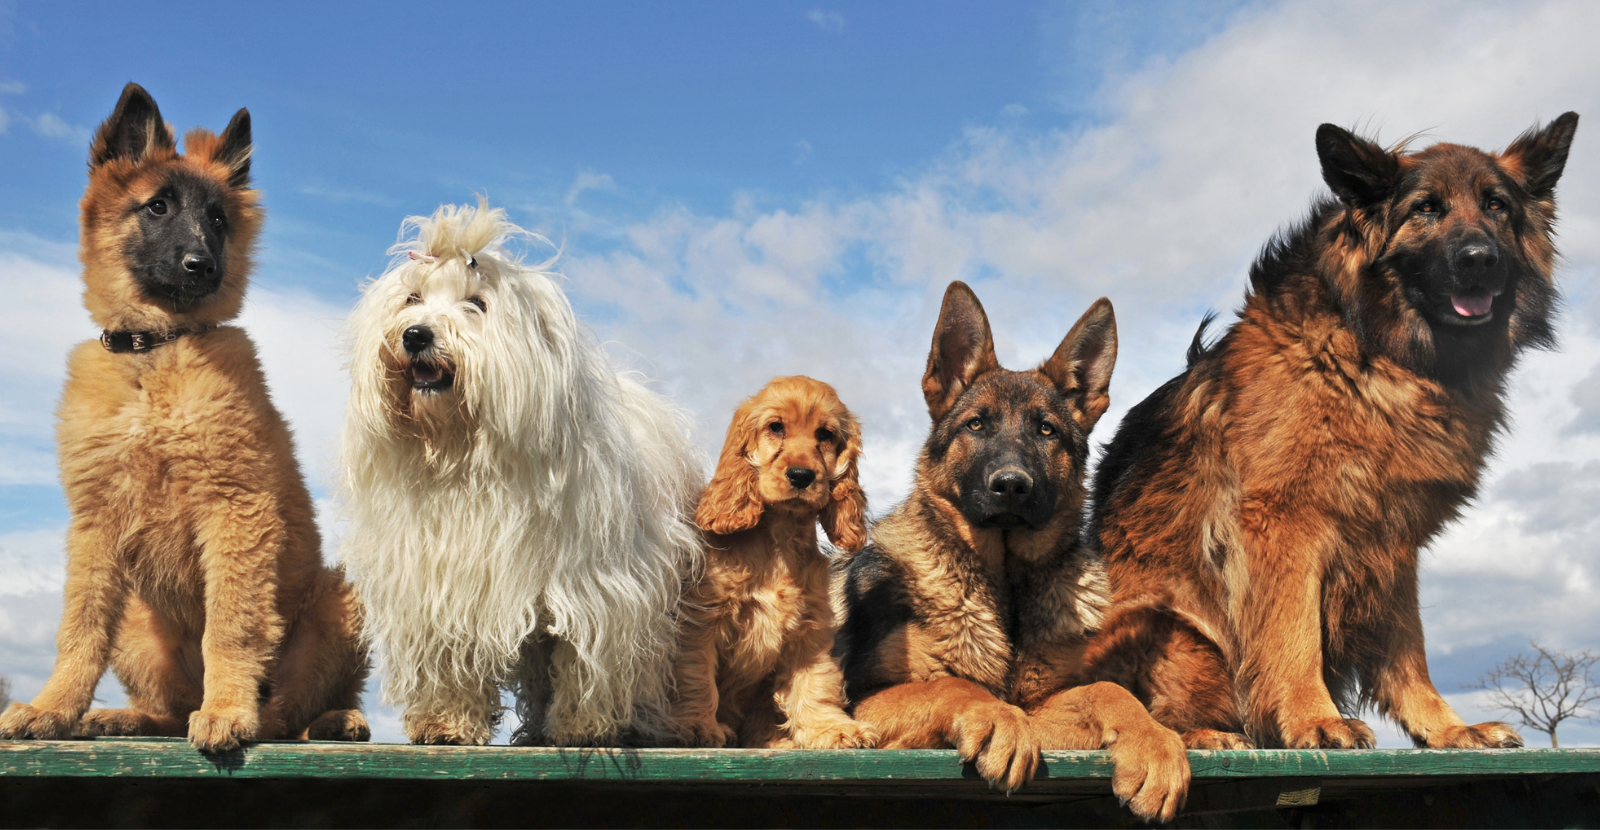 Mixed Breeds: Beautiful, Unusual and At Risk for Arthritis